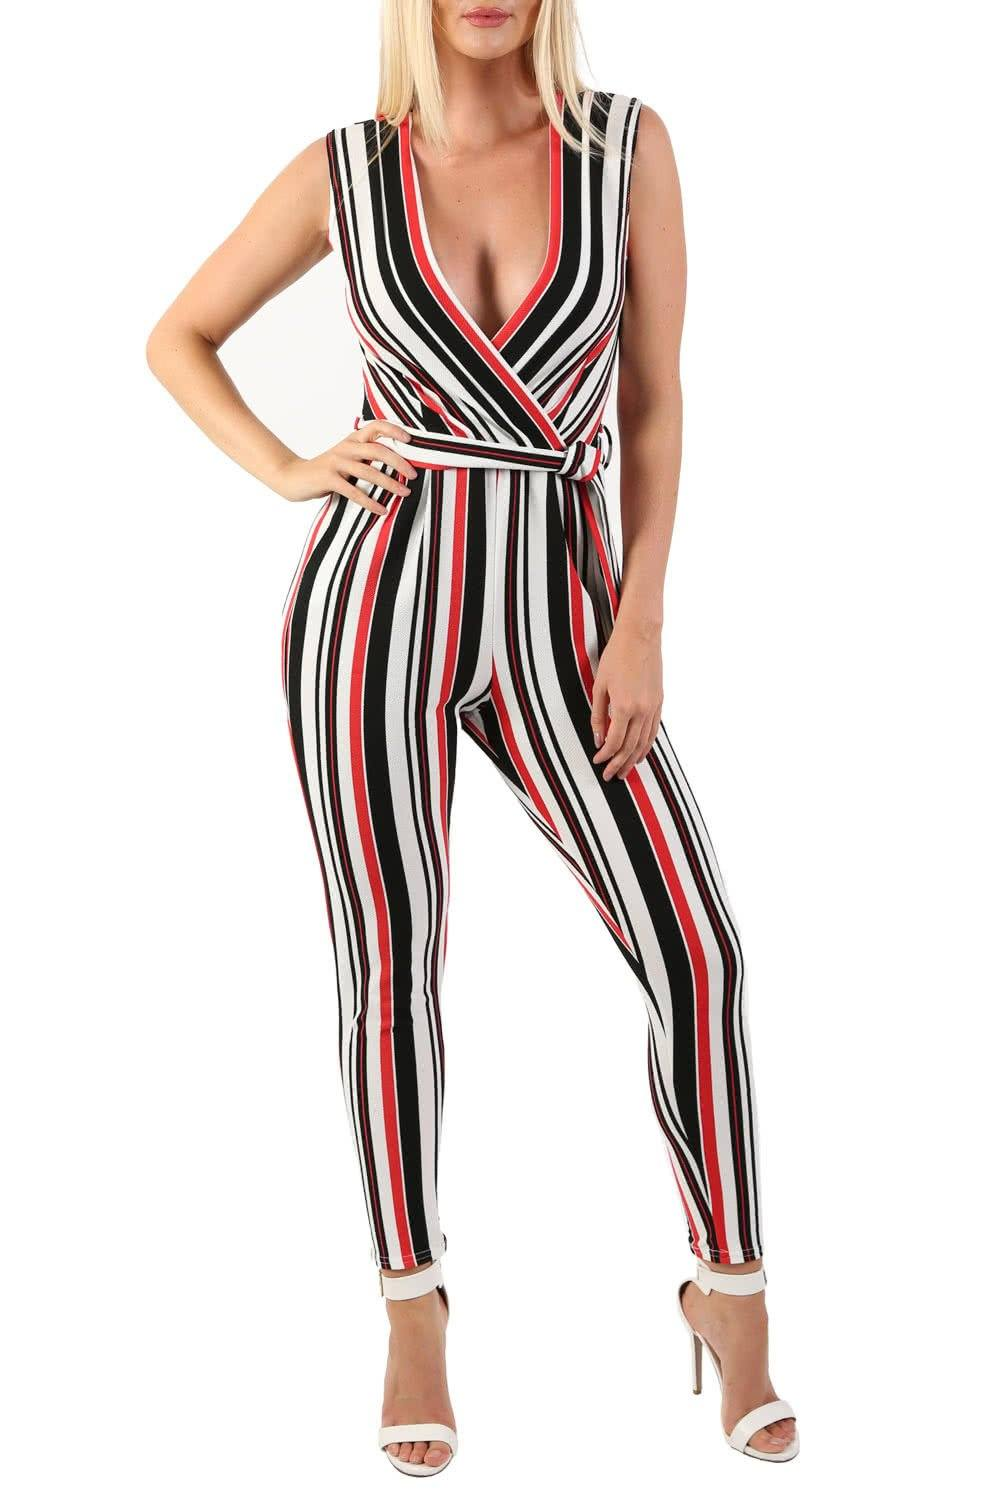 Shorts - Stripe Wrap Front Jumpsuit In White